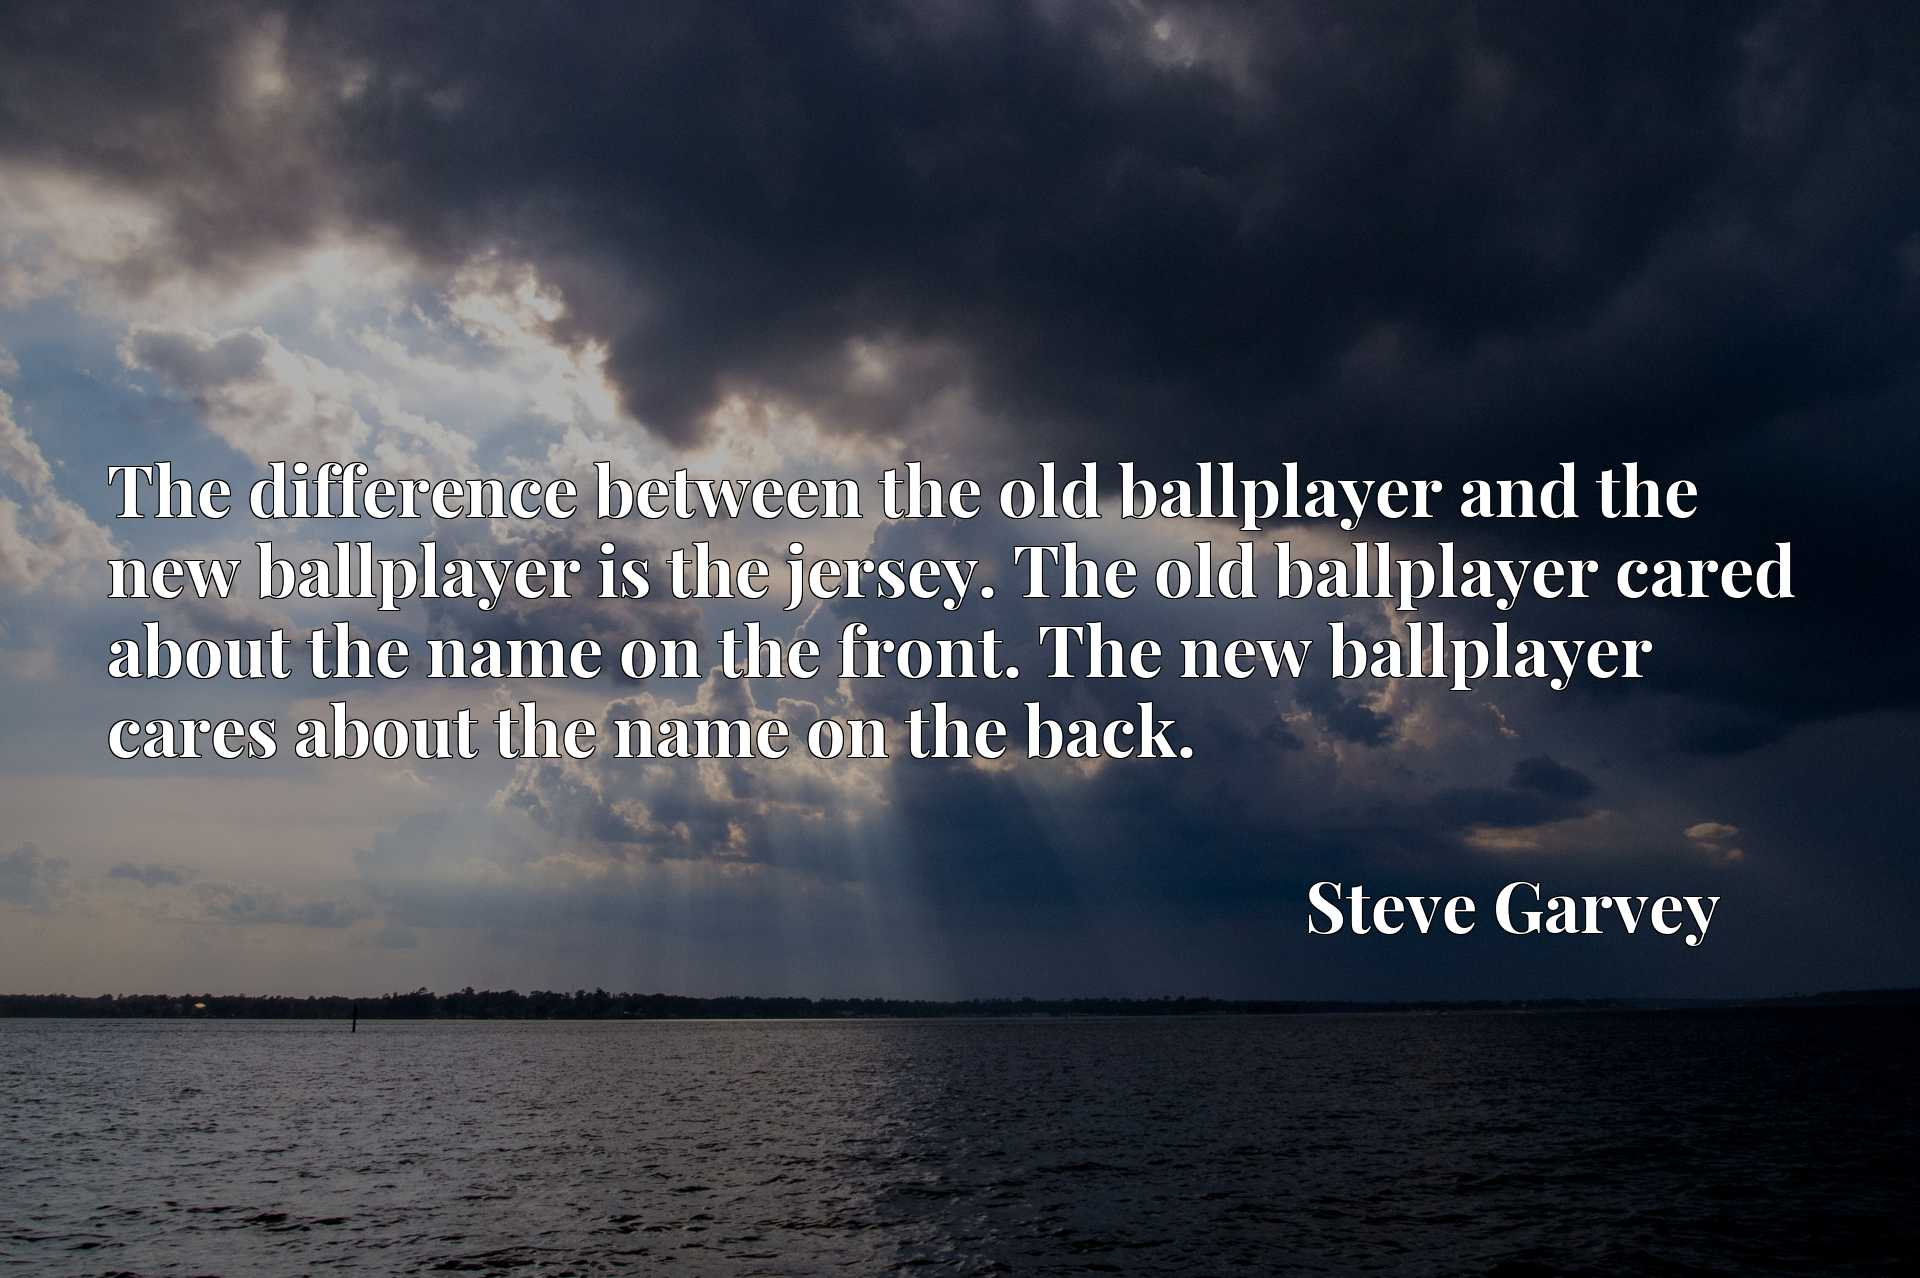 The difference between the old ballplayer and the new ballplayer is the jersey. The old ballplayer cared about the name on the front. The new ballplayer cares about the name on the back.